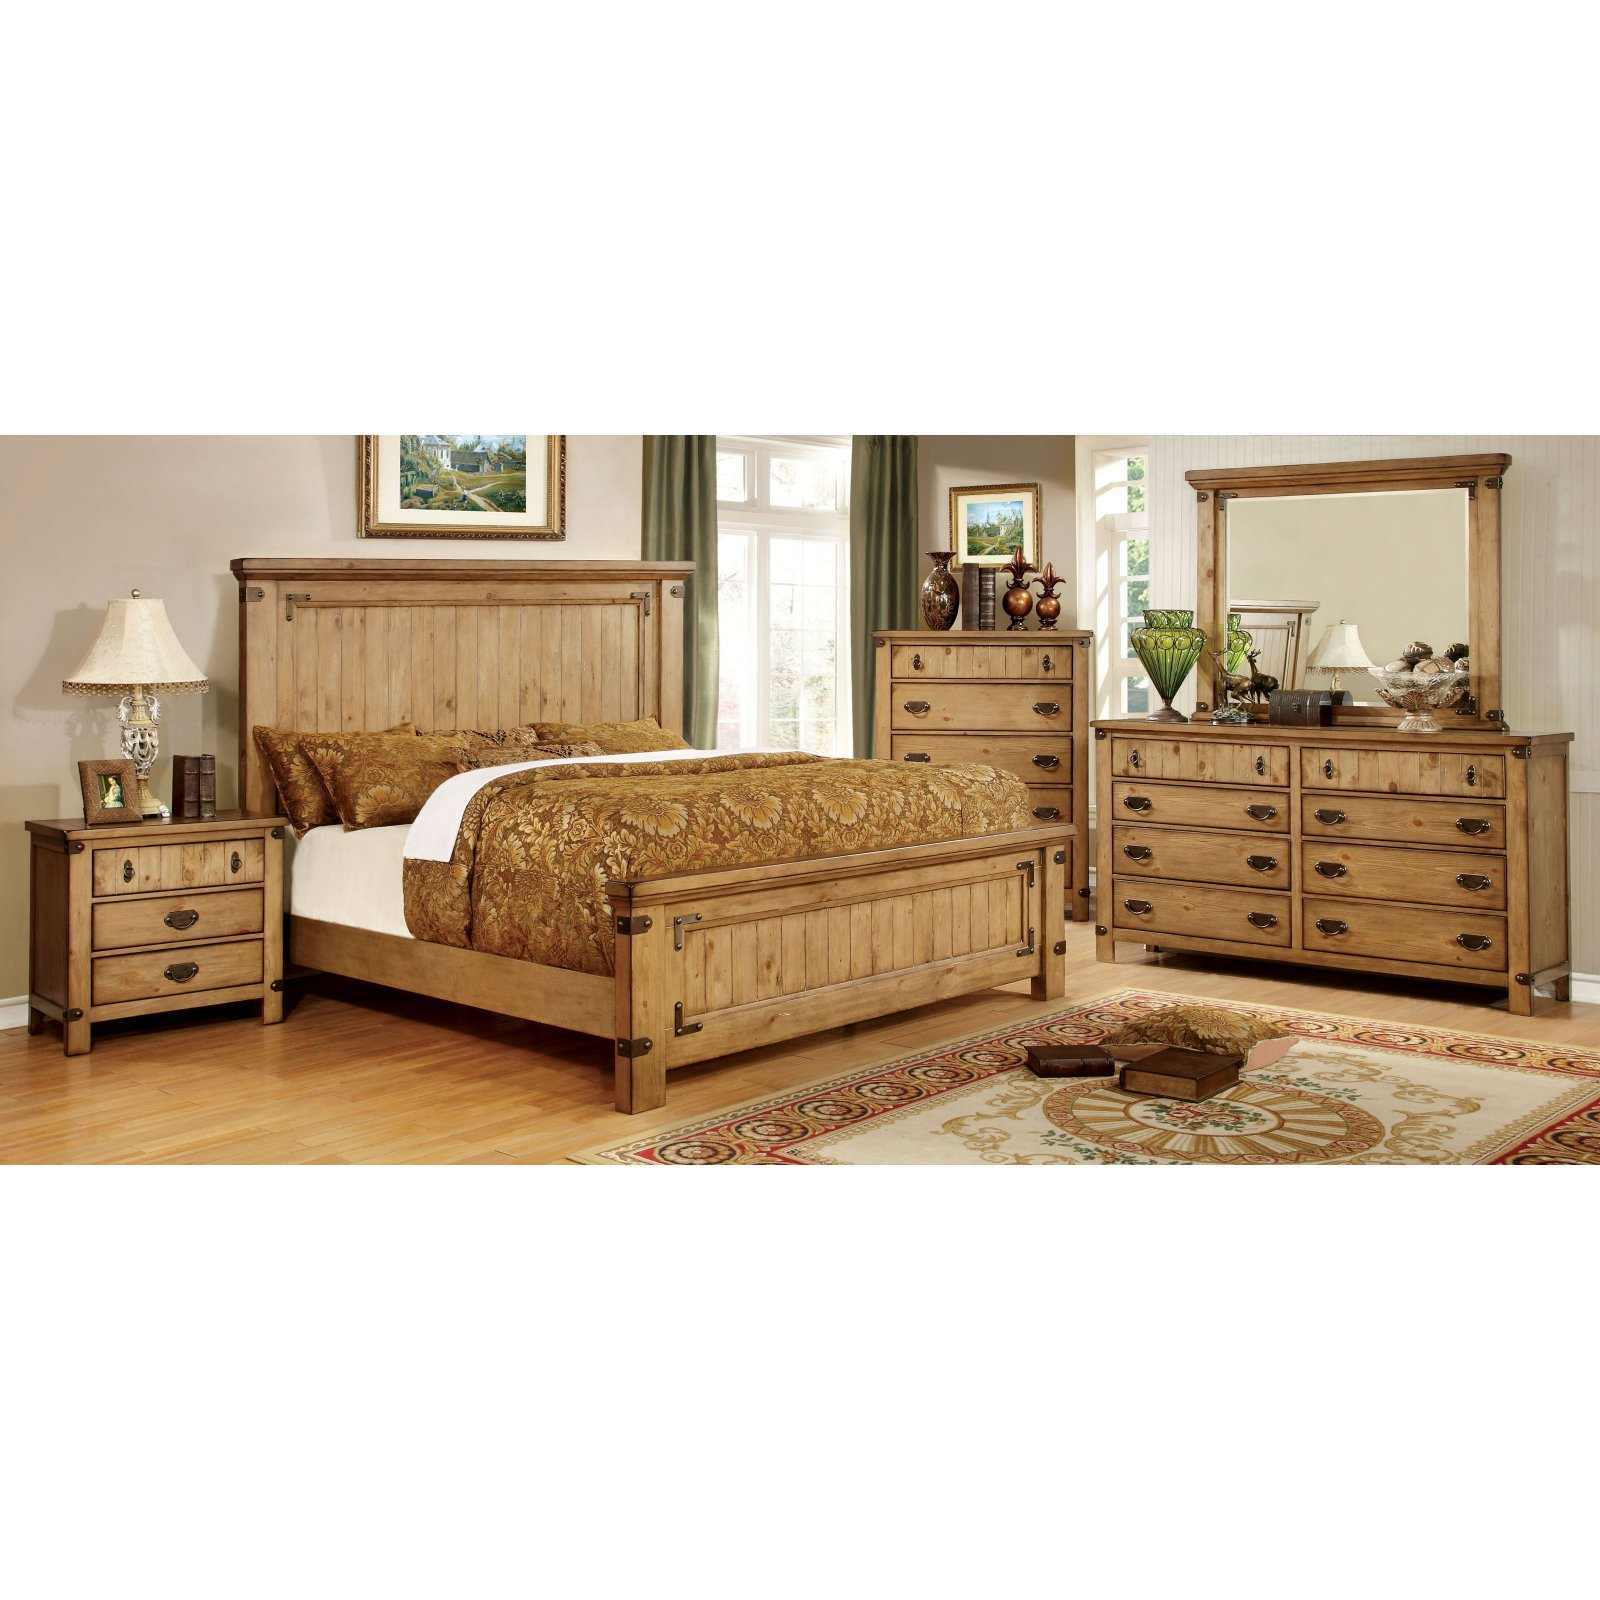 Furniture of America Cauble Panel Bed Set